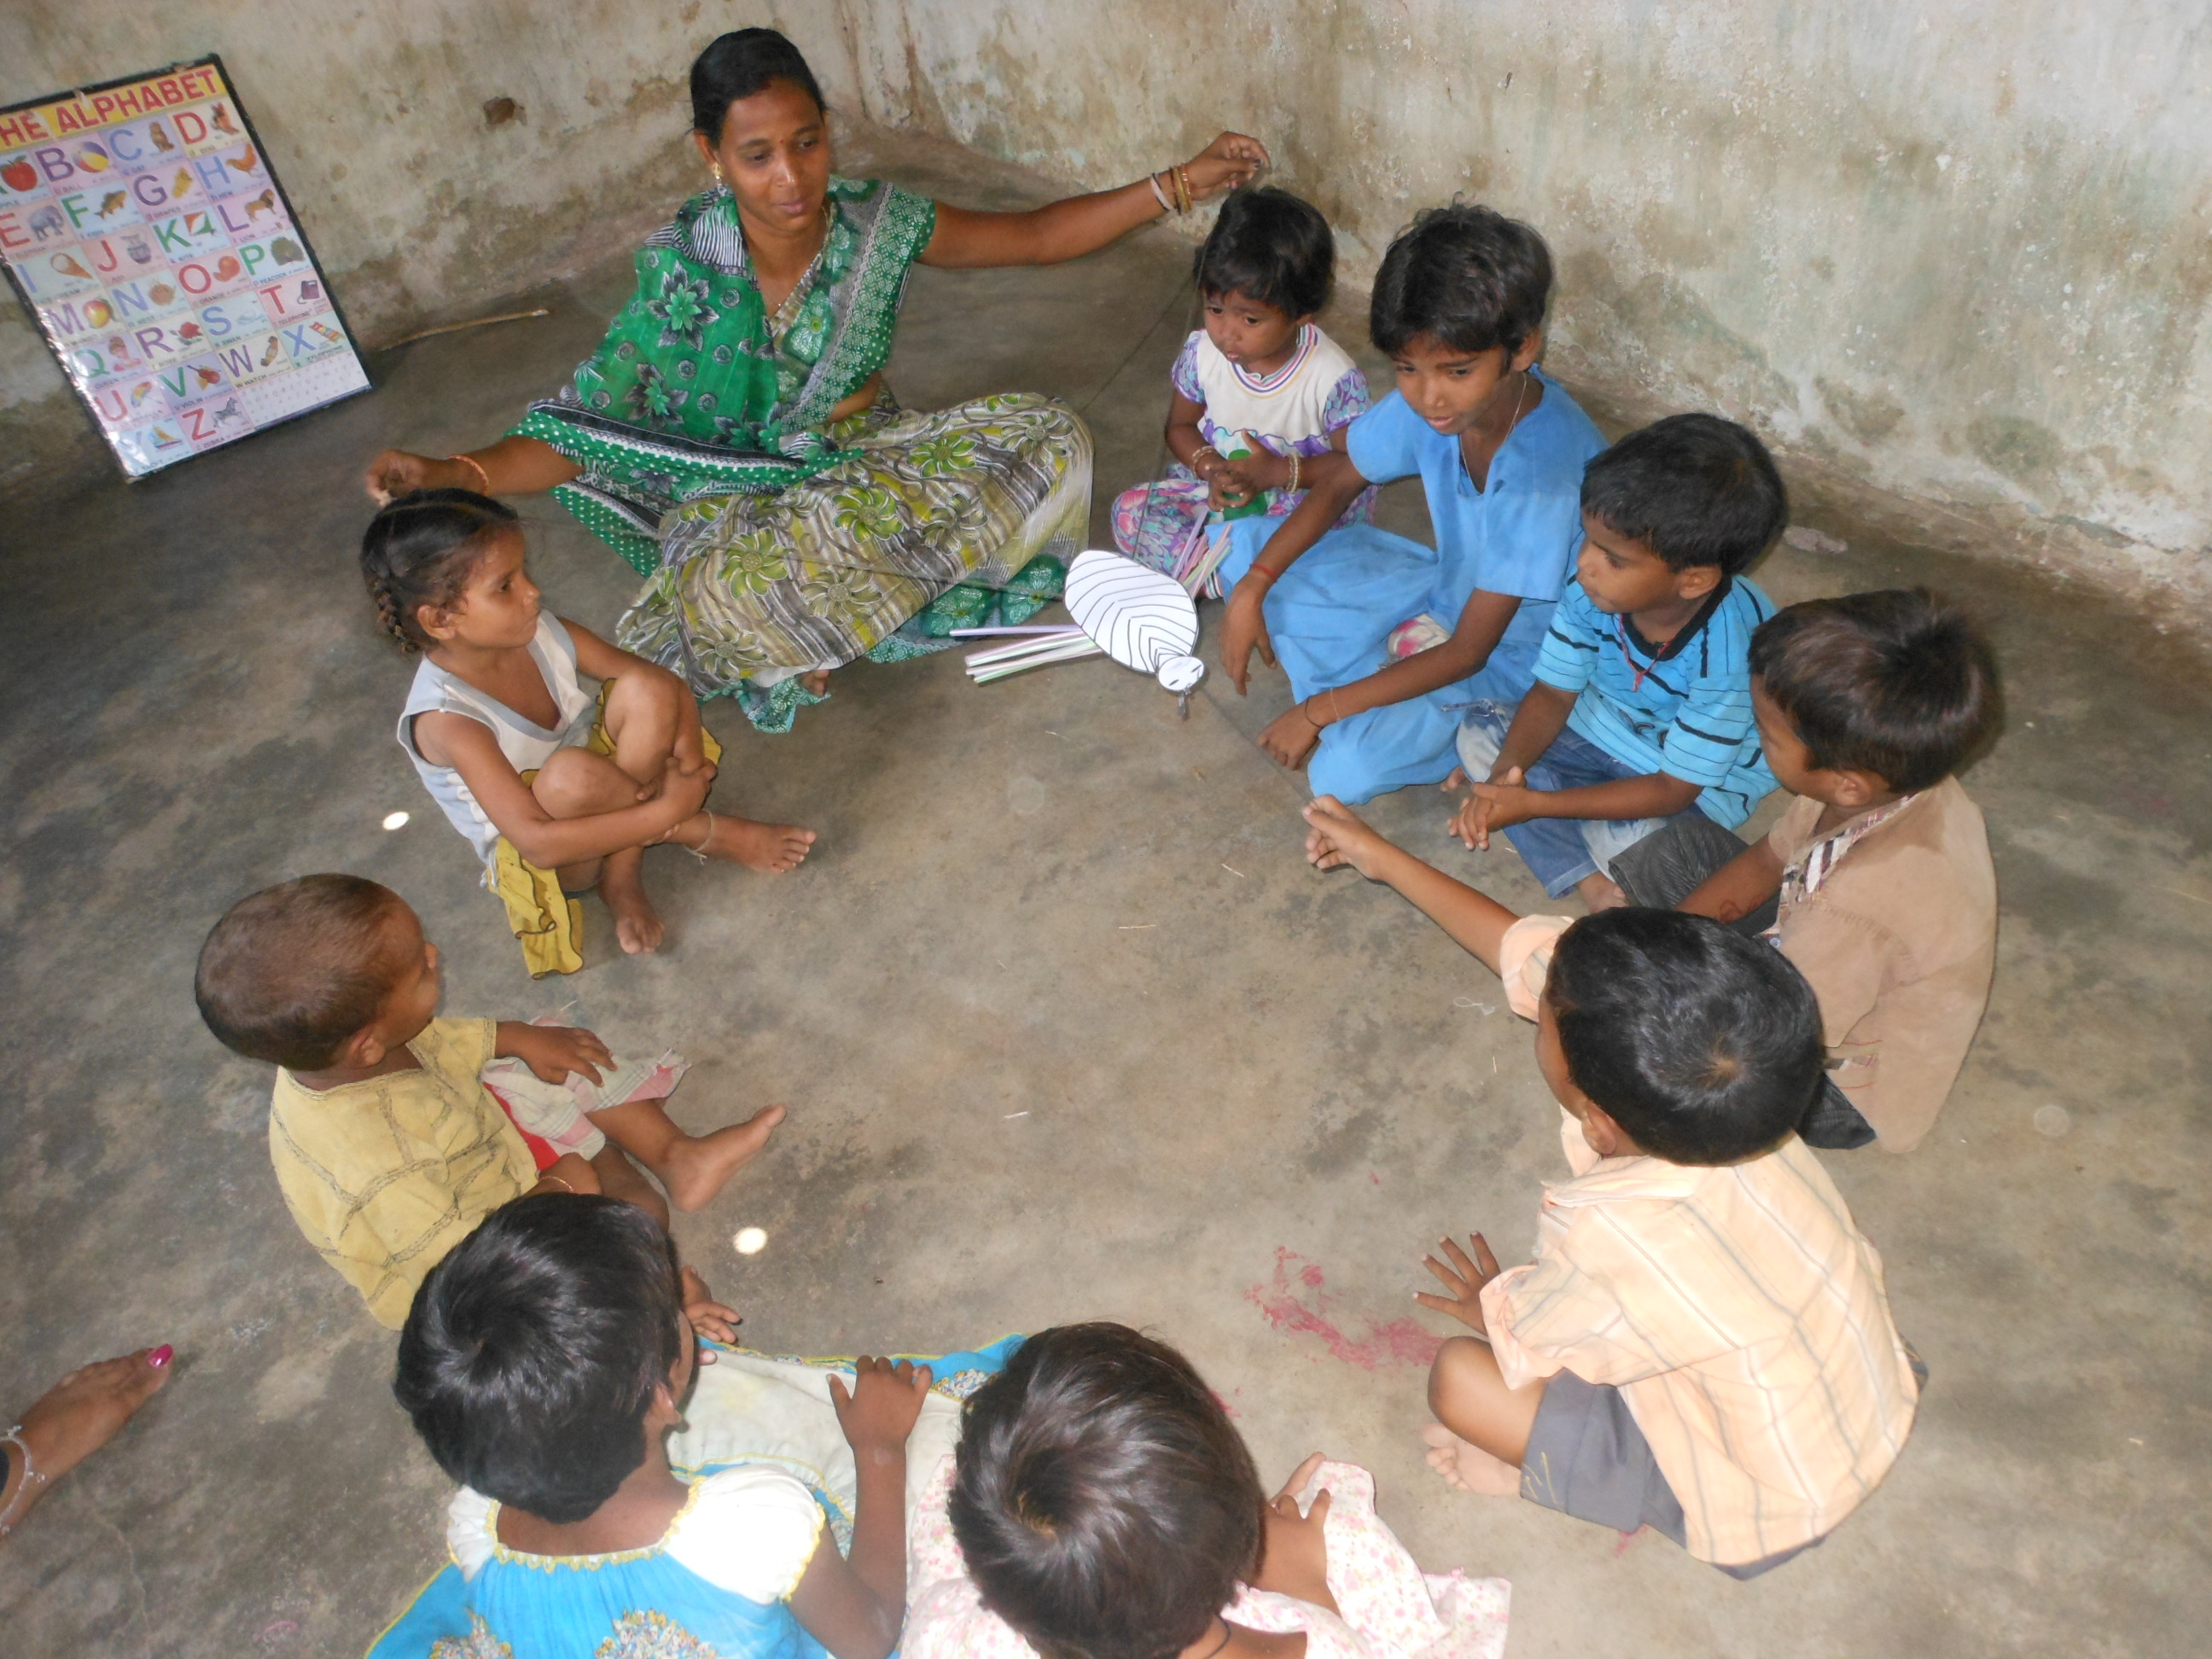 Protect 1,500 children in Orissa, India from abuse - GlobalGiving